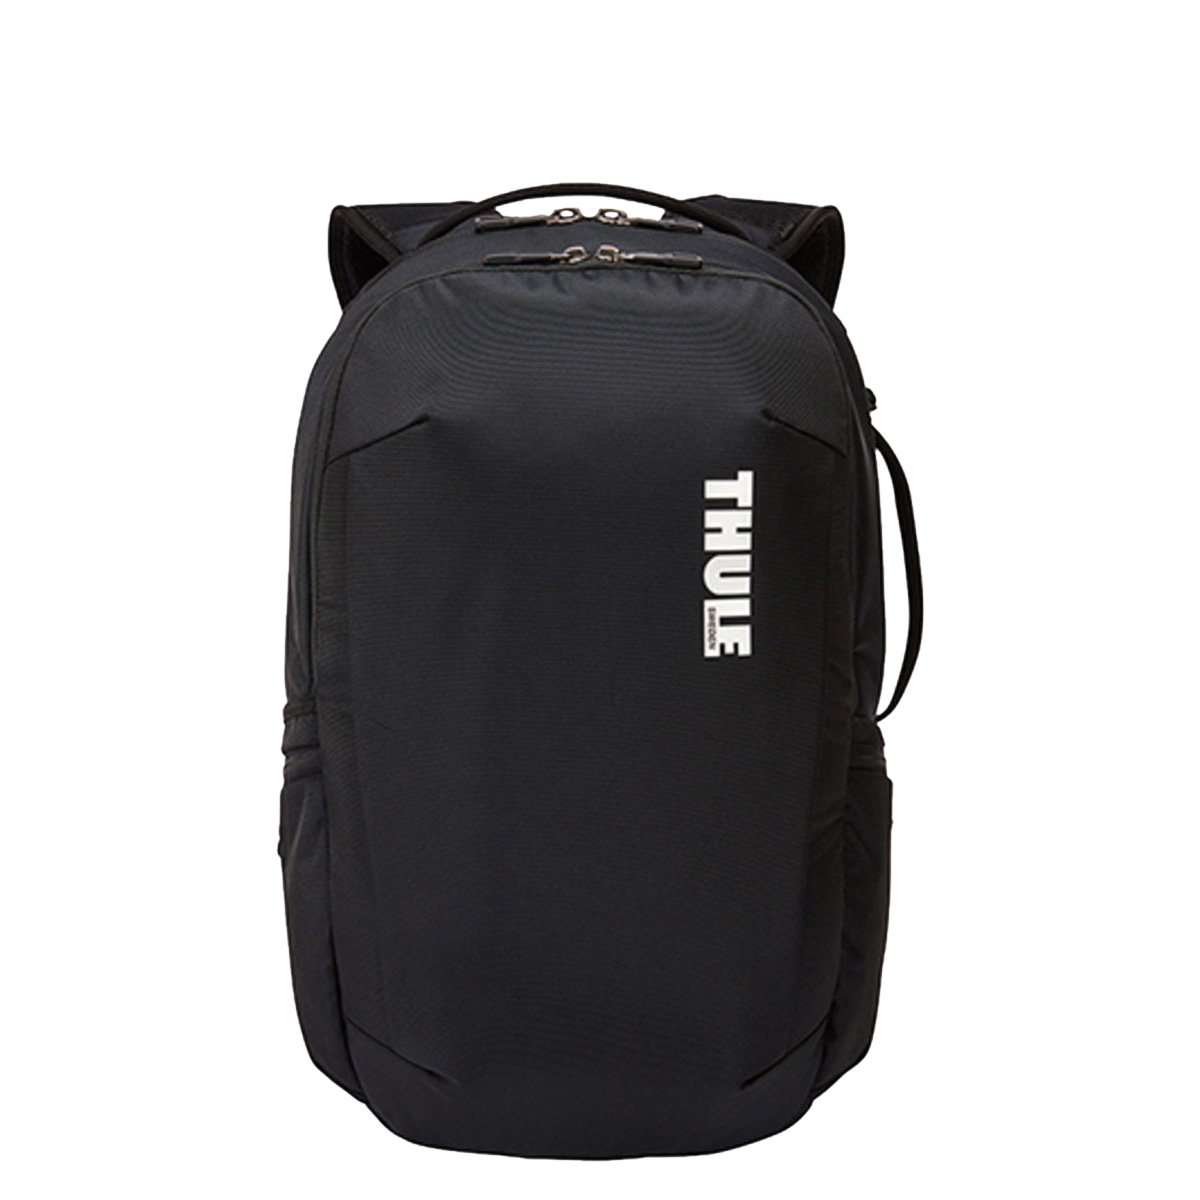 THULE SUBTERRA BACKPACK スーリー リュック バッグ バックパック メンズ 30L ブラック 黒 3204053 [5/29 新入荷]